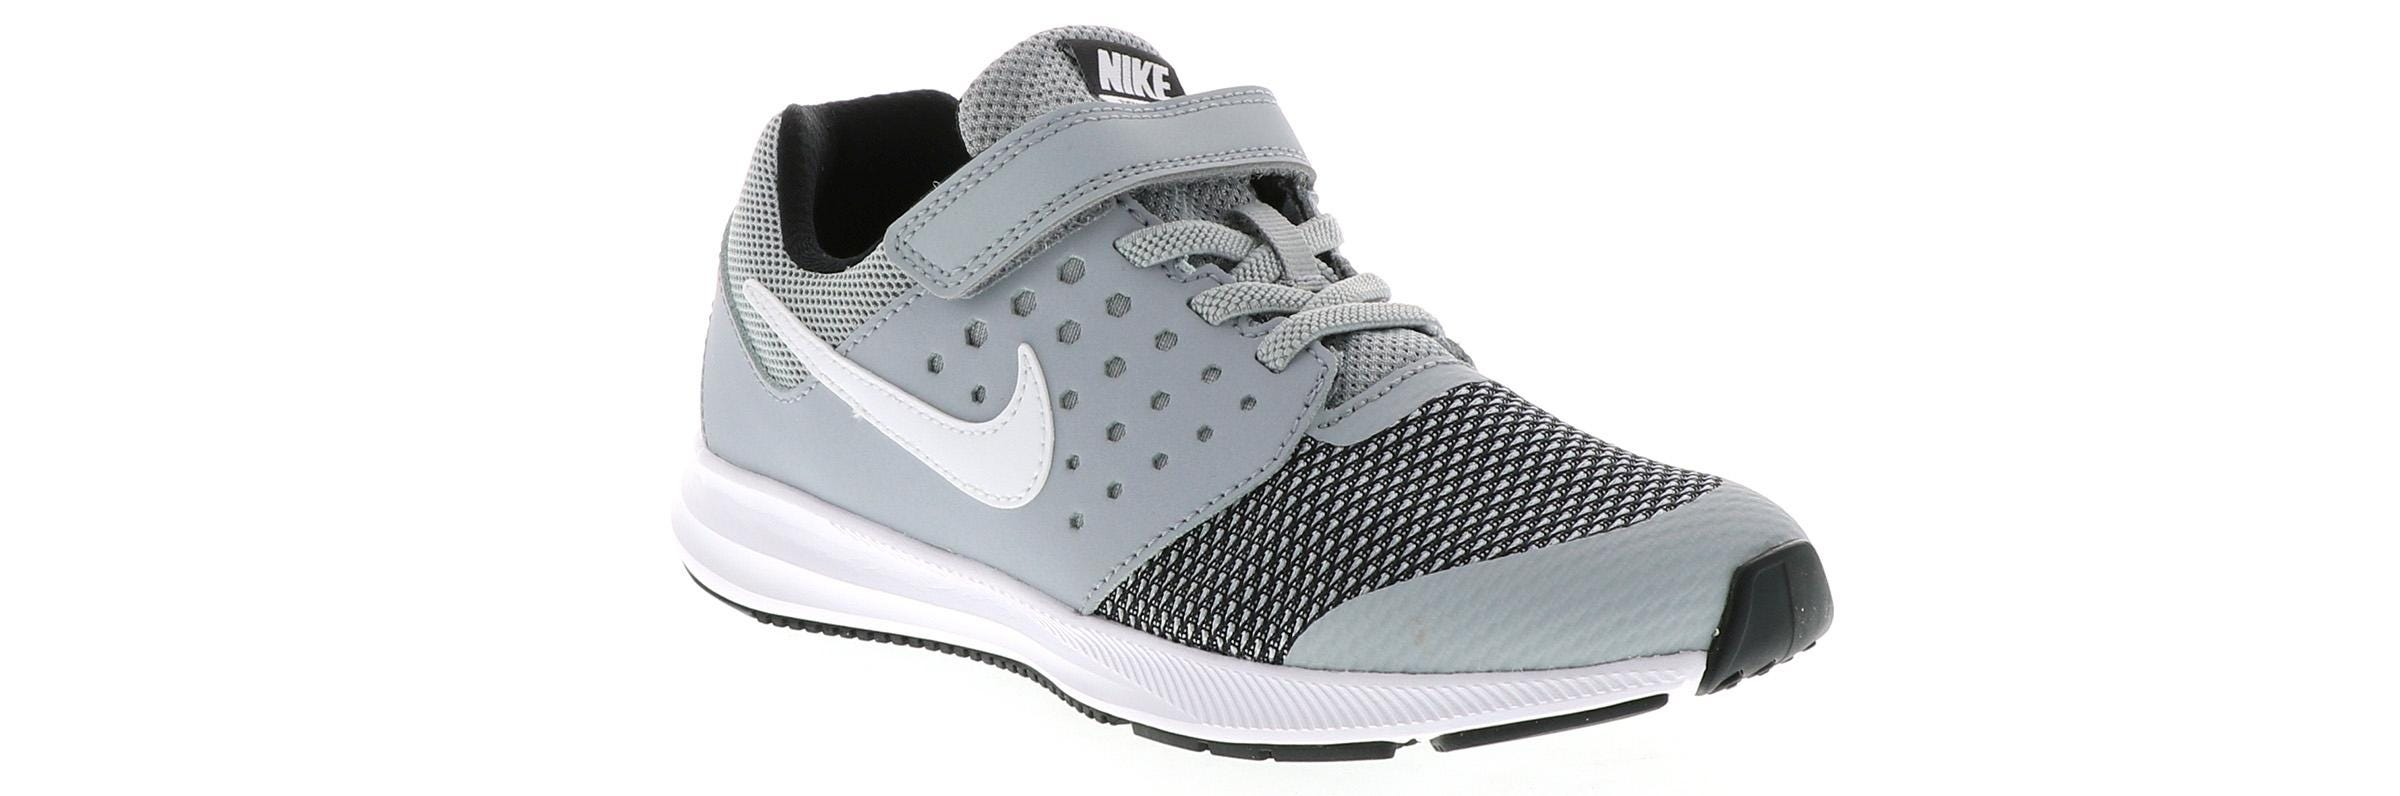 New Nike Downshifter 7 Running Sneakers for Toddler Size 8